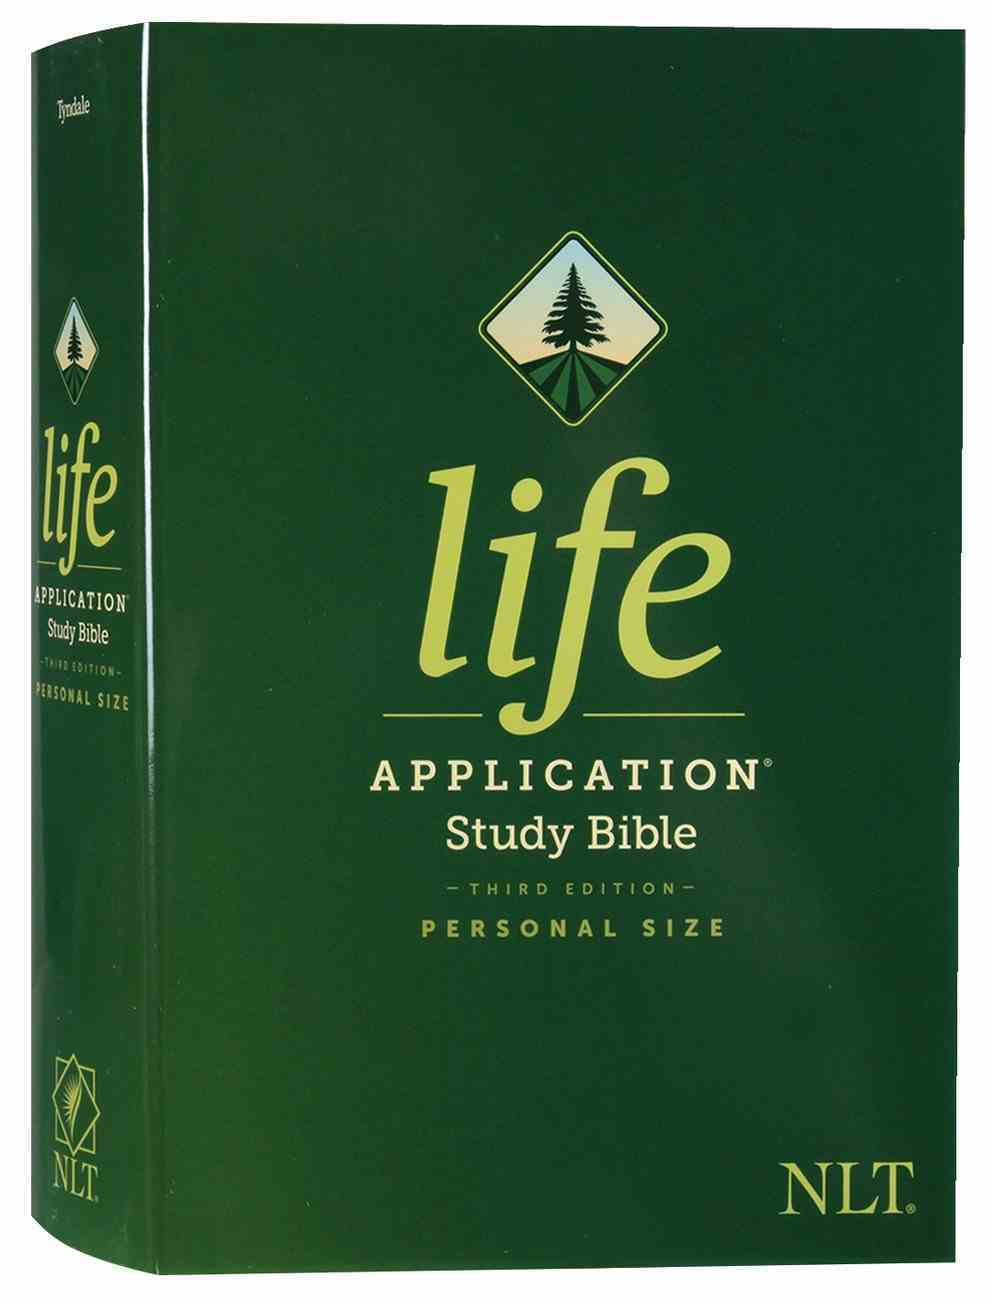 NLT Life Application Study Bible Third Edition Personal Size (Black Letter Edition) Hardback